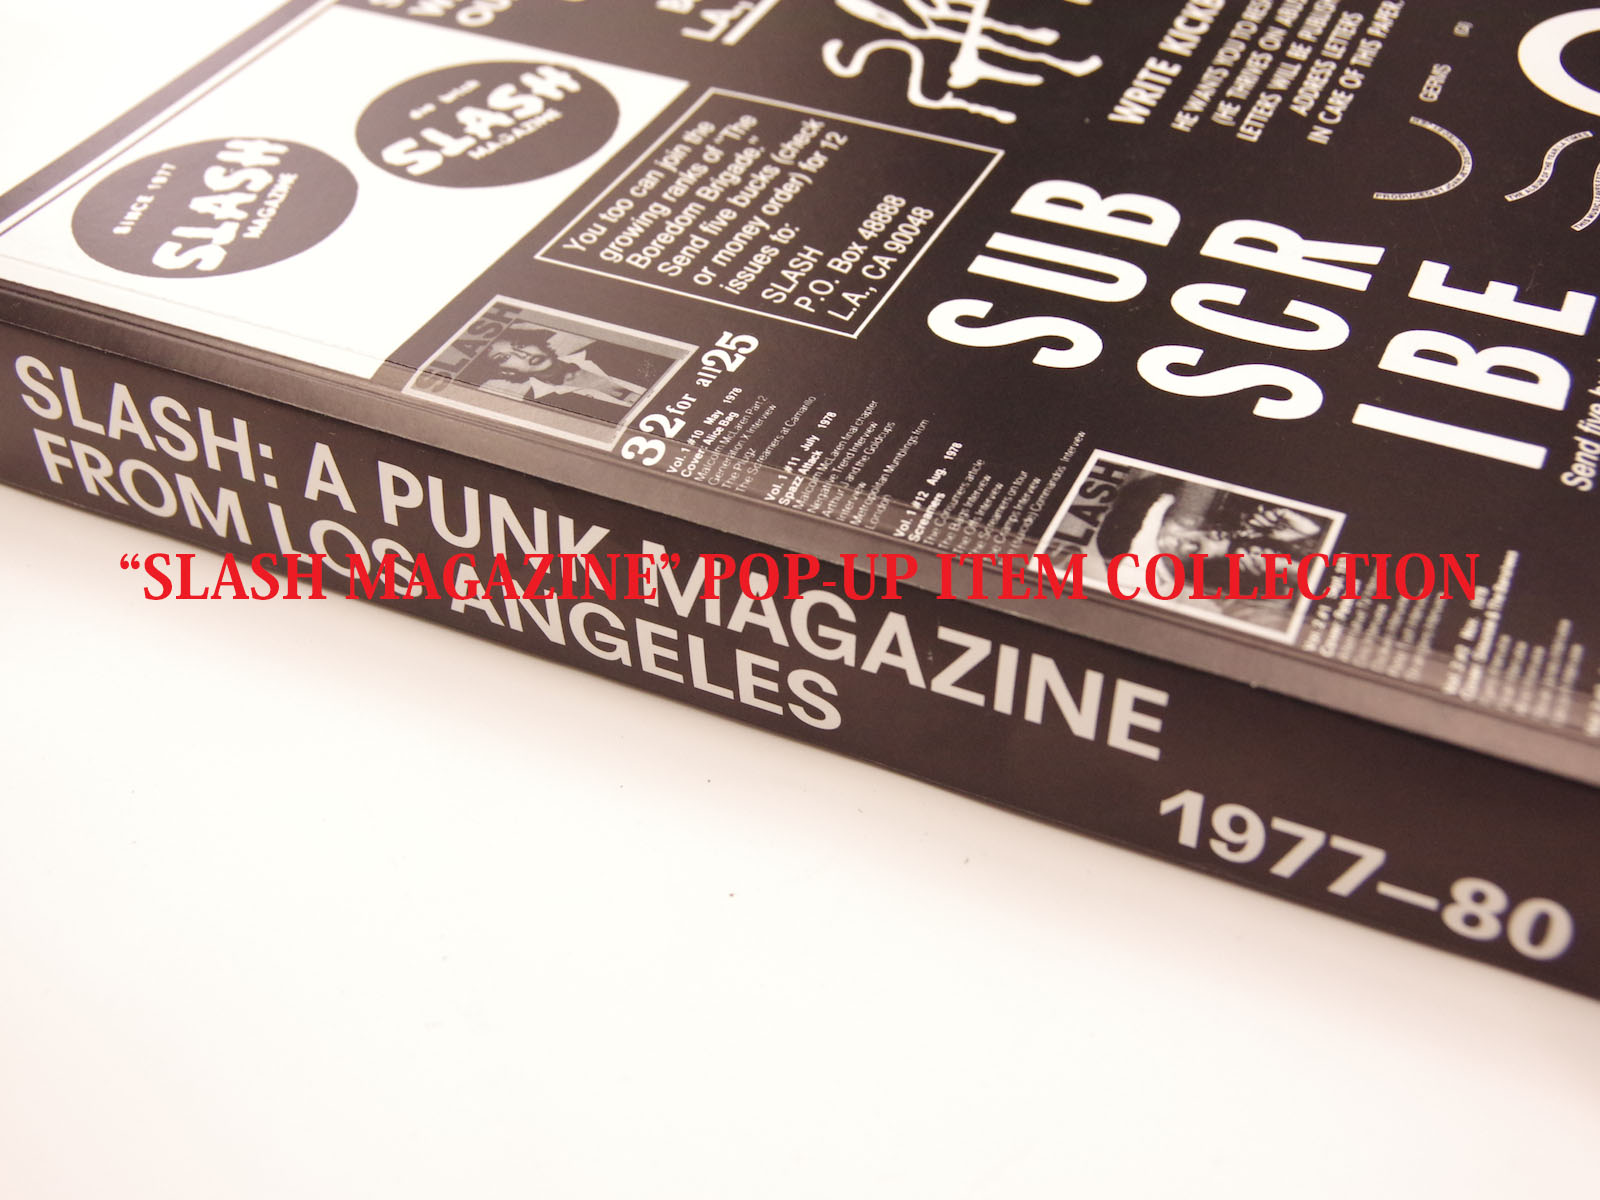 SLASH MAGAZINE POP-UP ITEM COLLECTION